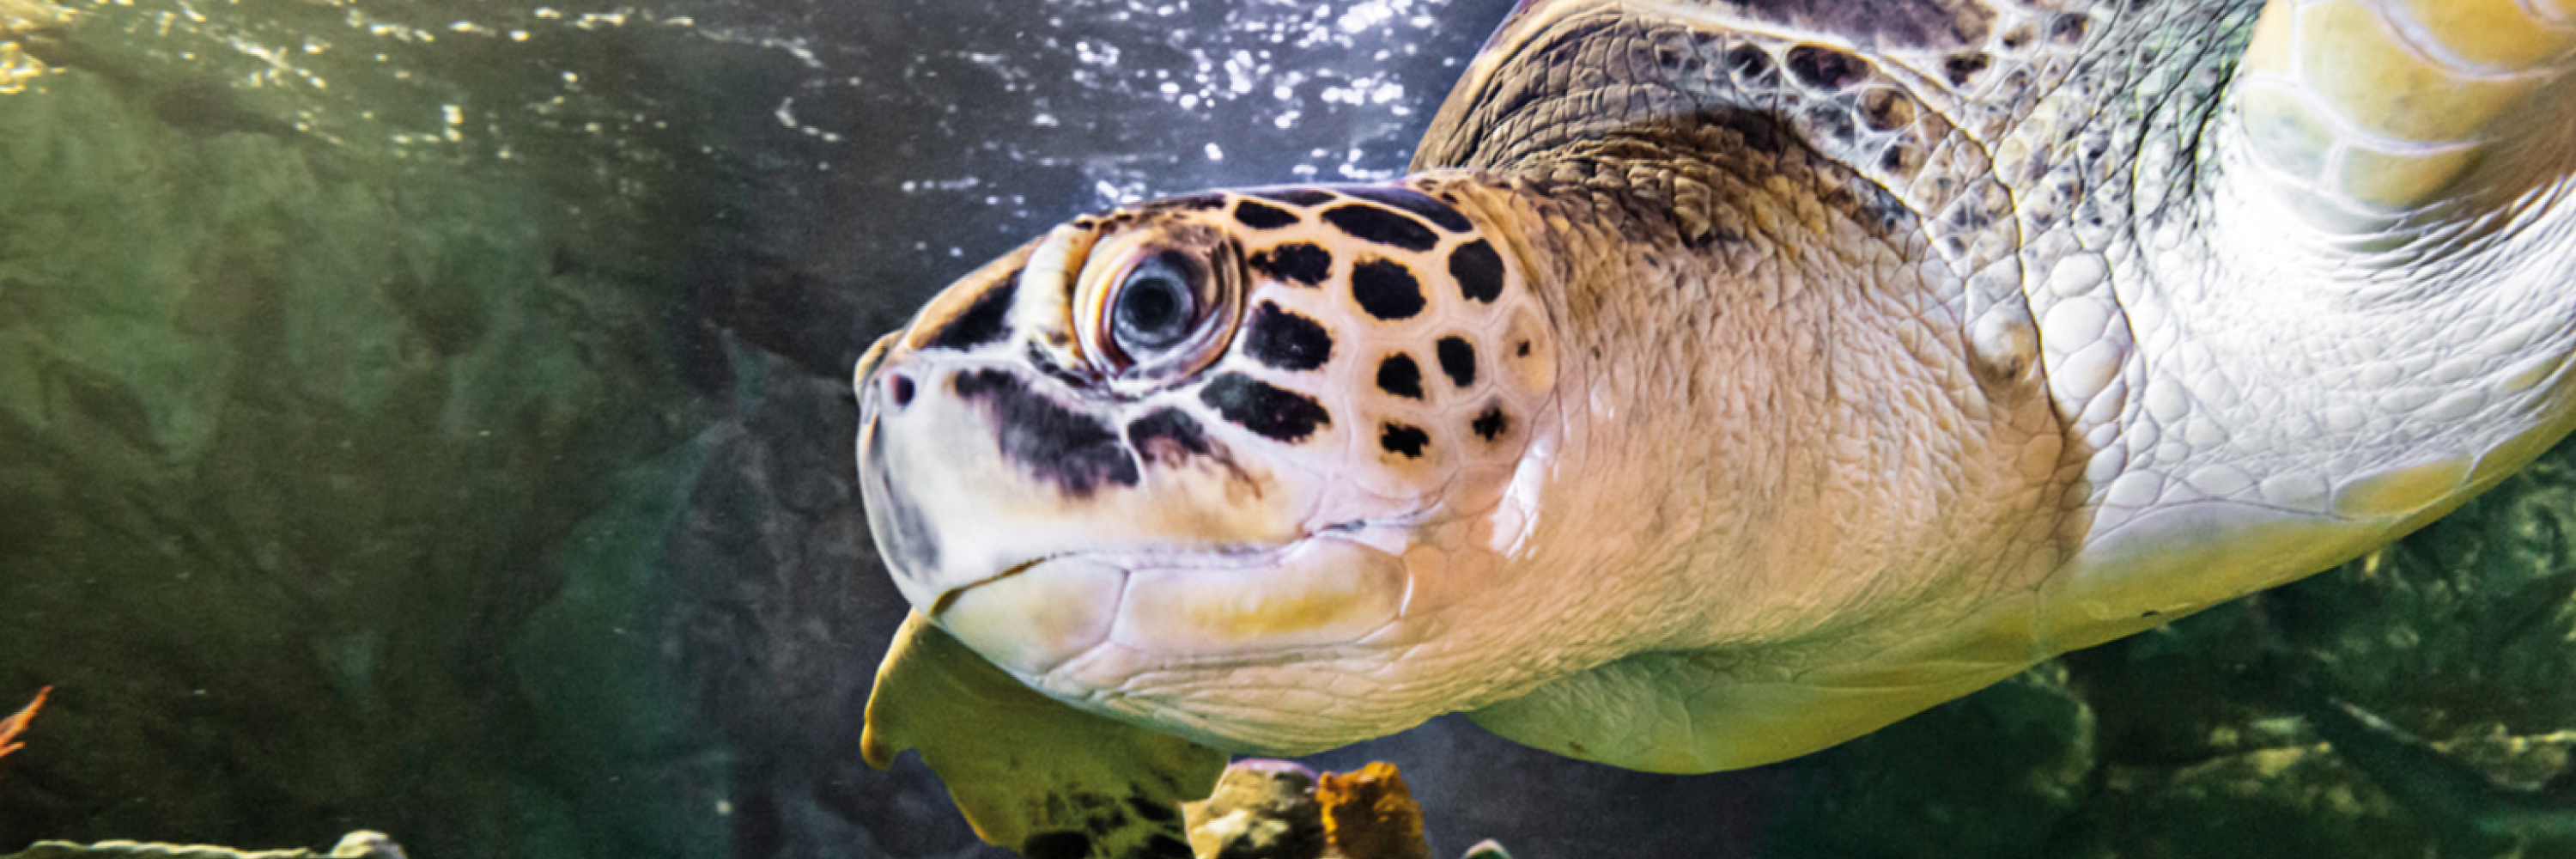 Sea Turtle 3000X1000 | SEA LIFE Aquarium